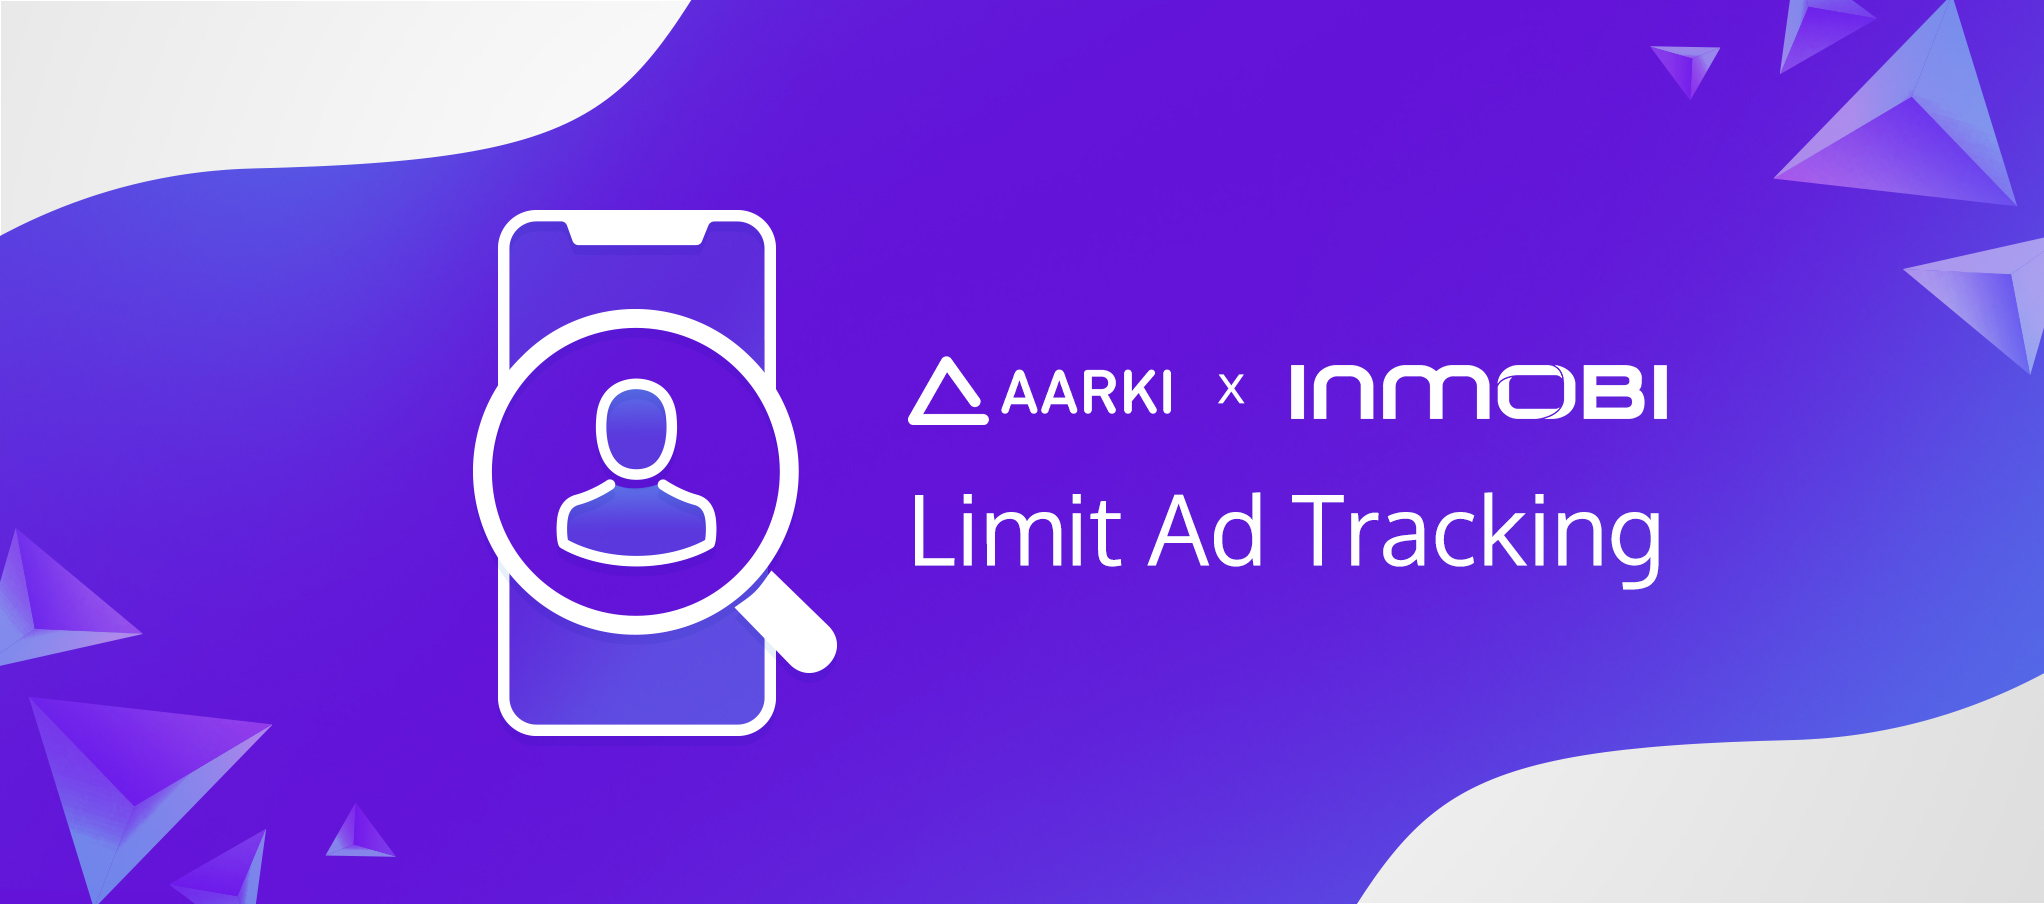 Aarki and InMobi logos: iOS14 LAT